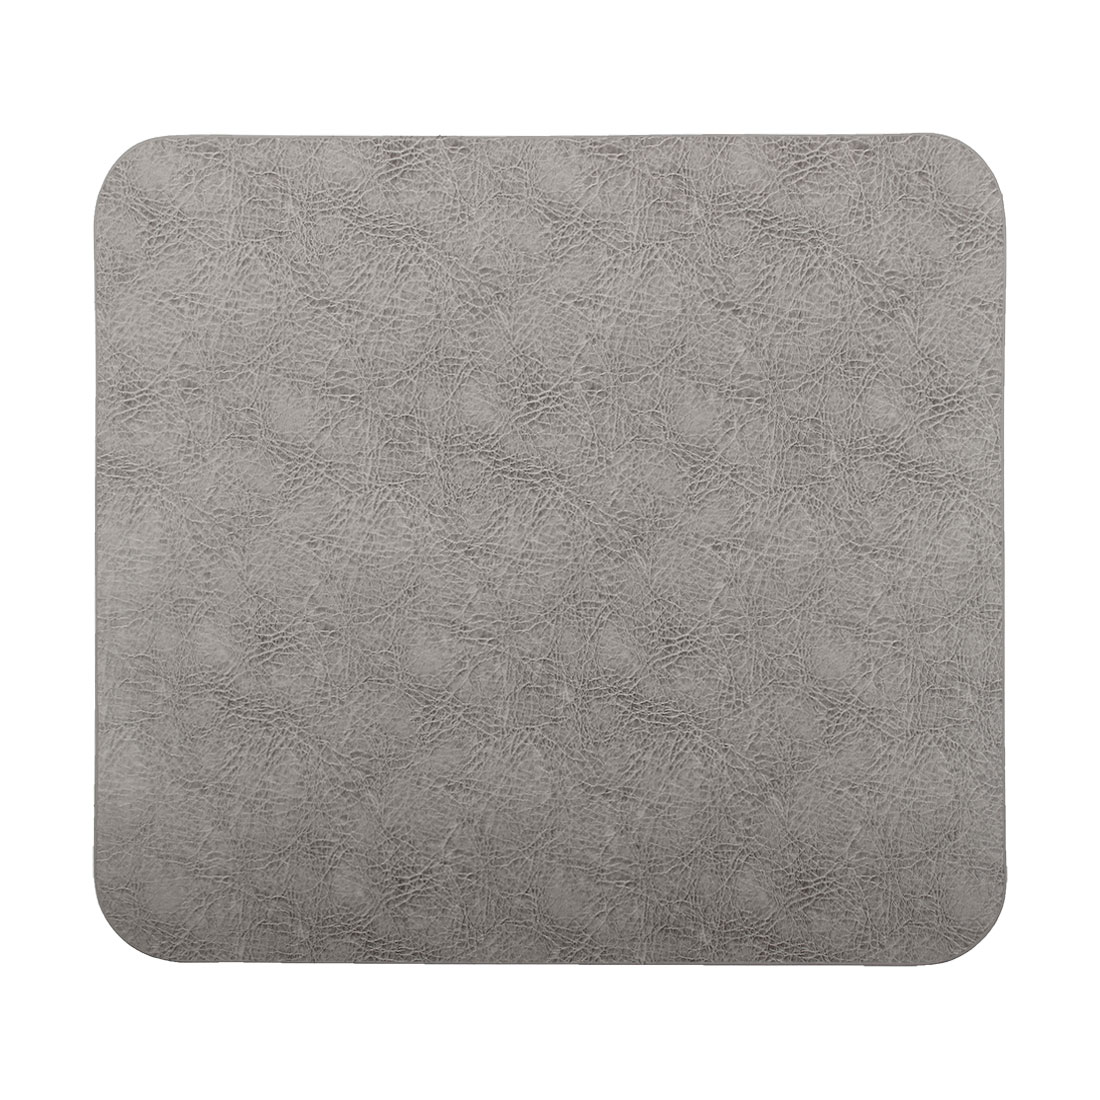 Faux Leather Rectangle Shaped Non-Slip Gaming Mouse Pad Gray for Computer Laptop